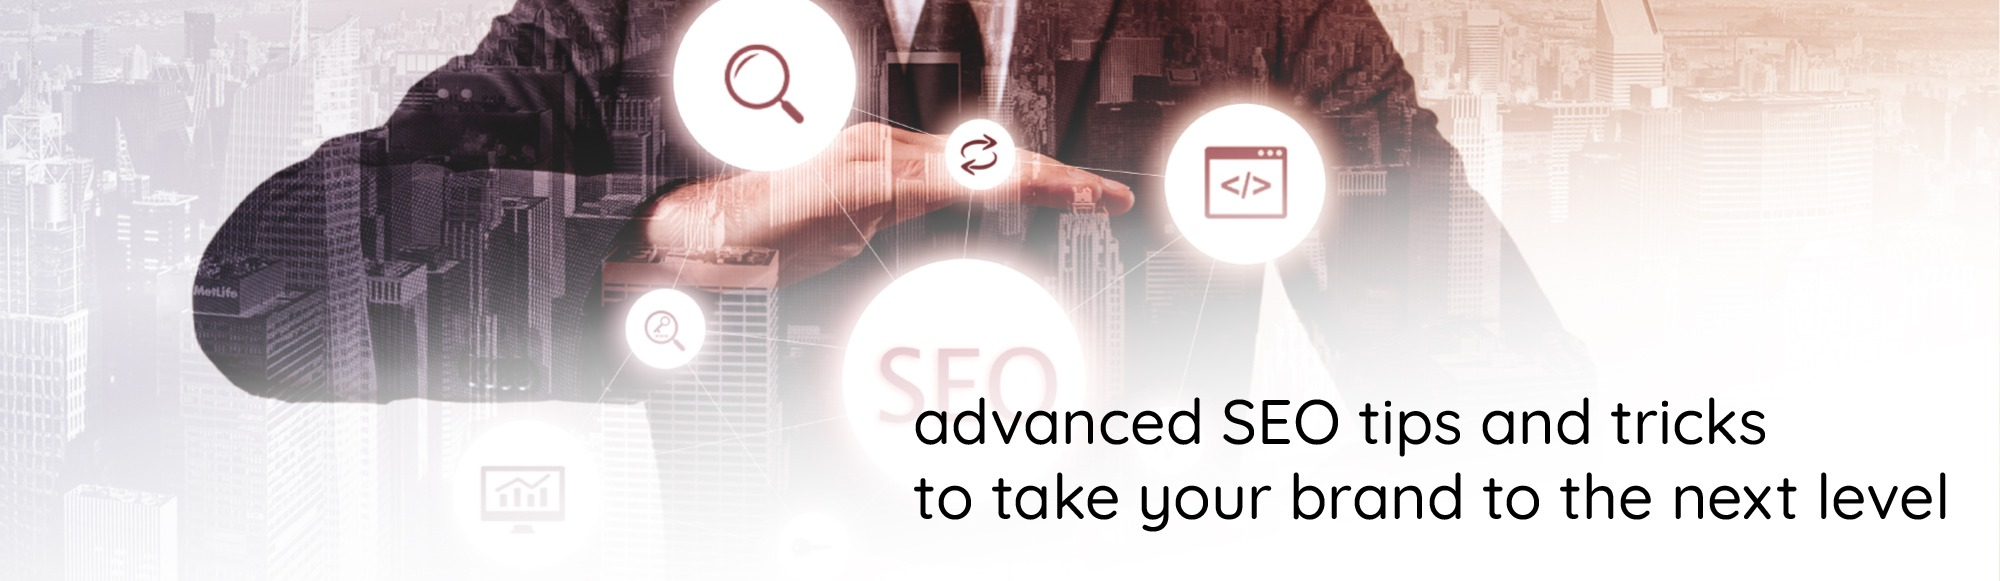 Advanced SEO Tips and Tricks to Take Your Brand to The Next Level